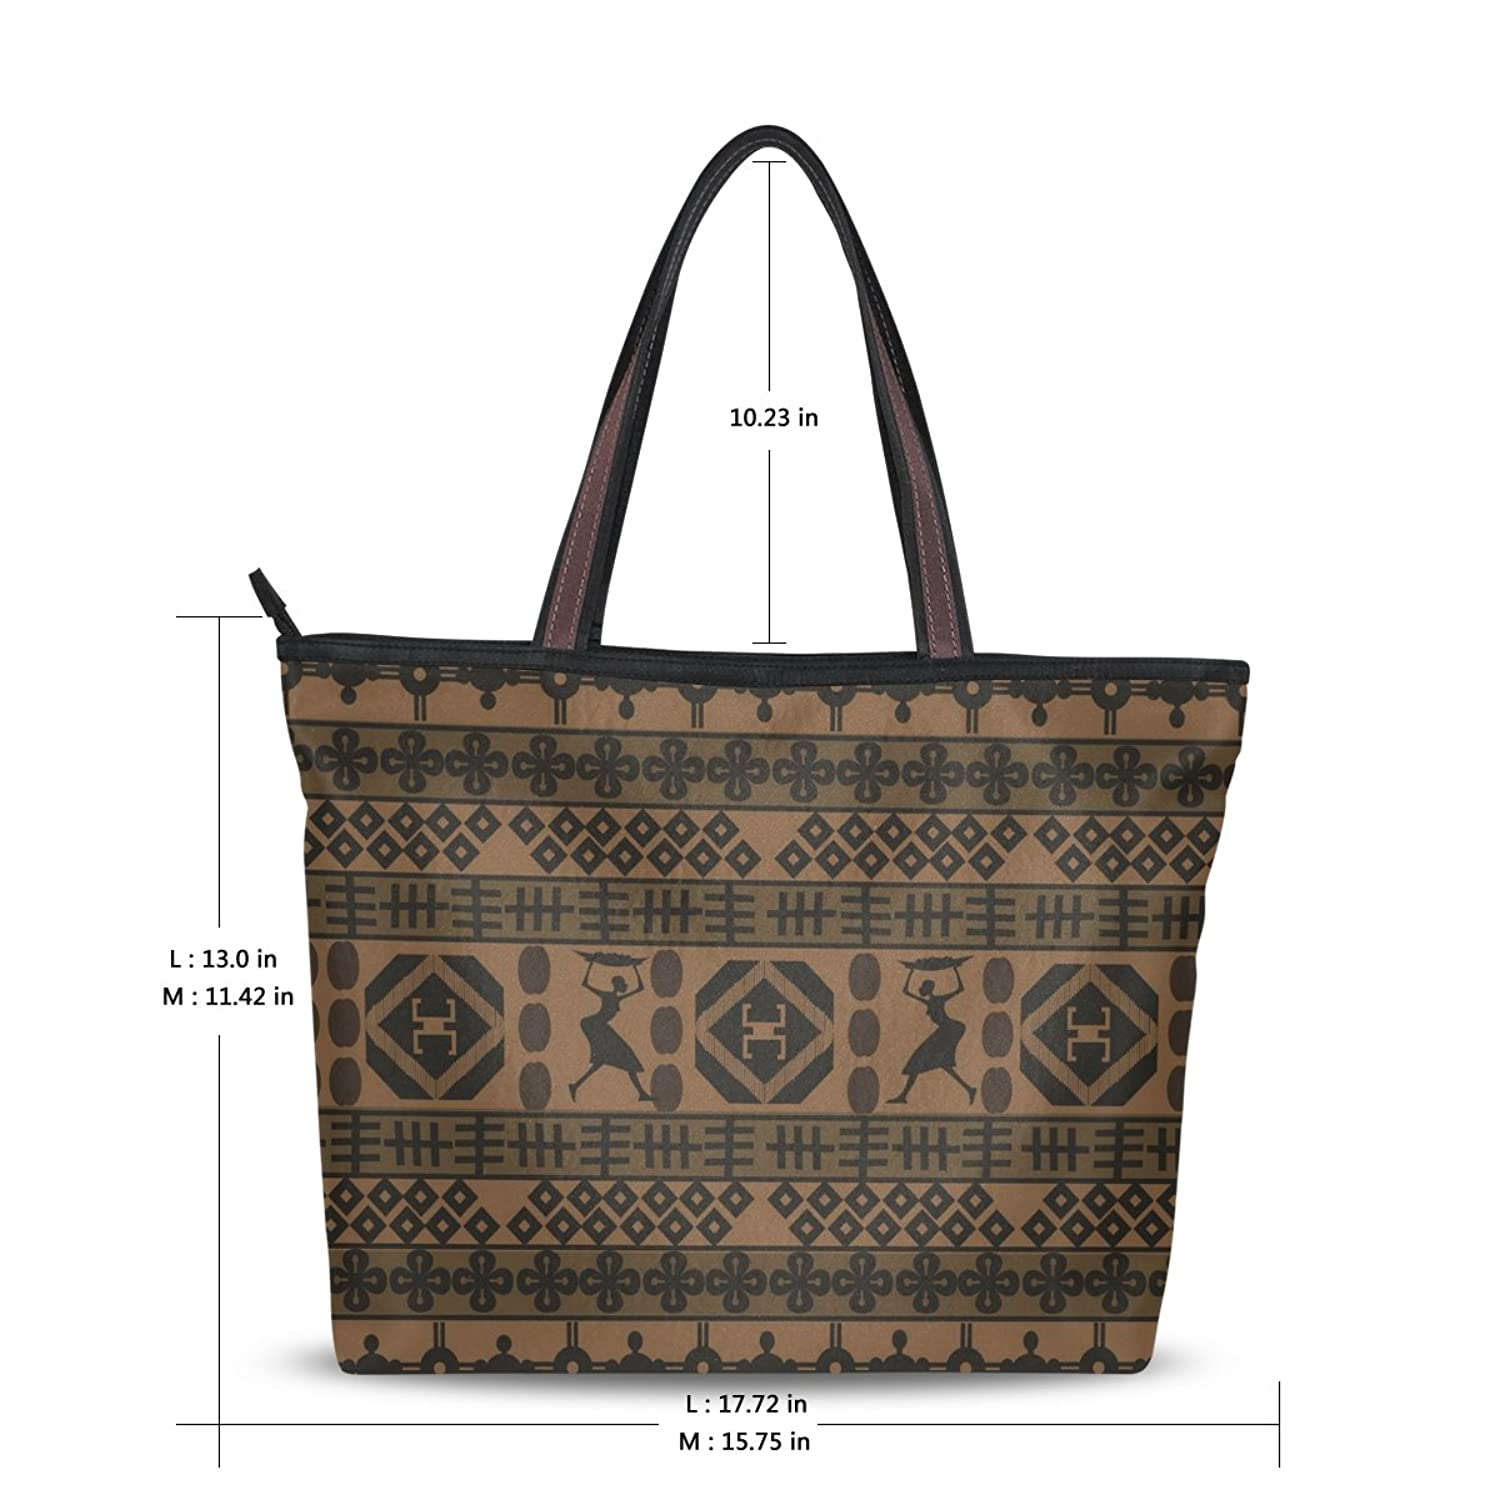 Senya Fashion Women's Handbag Microfiber Large Tote Shoulder Bag, Ethnic African Geometrically Elements